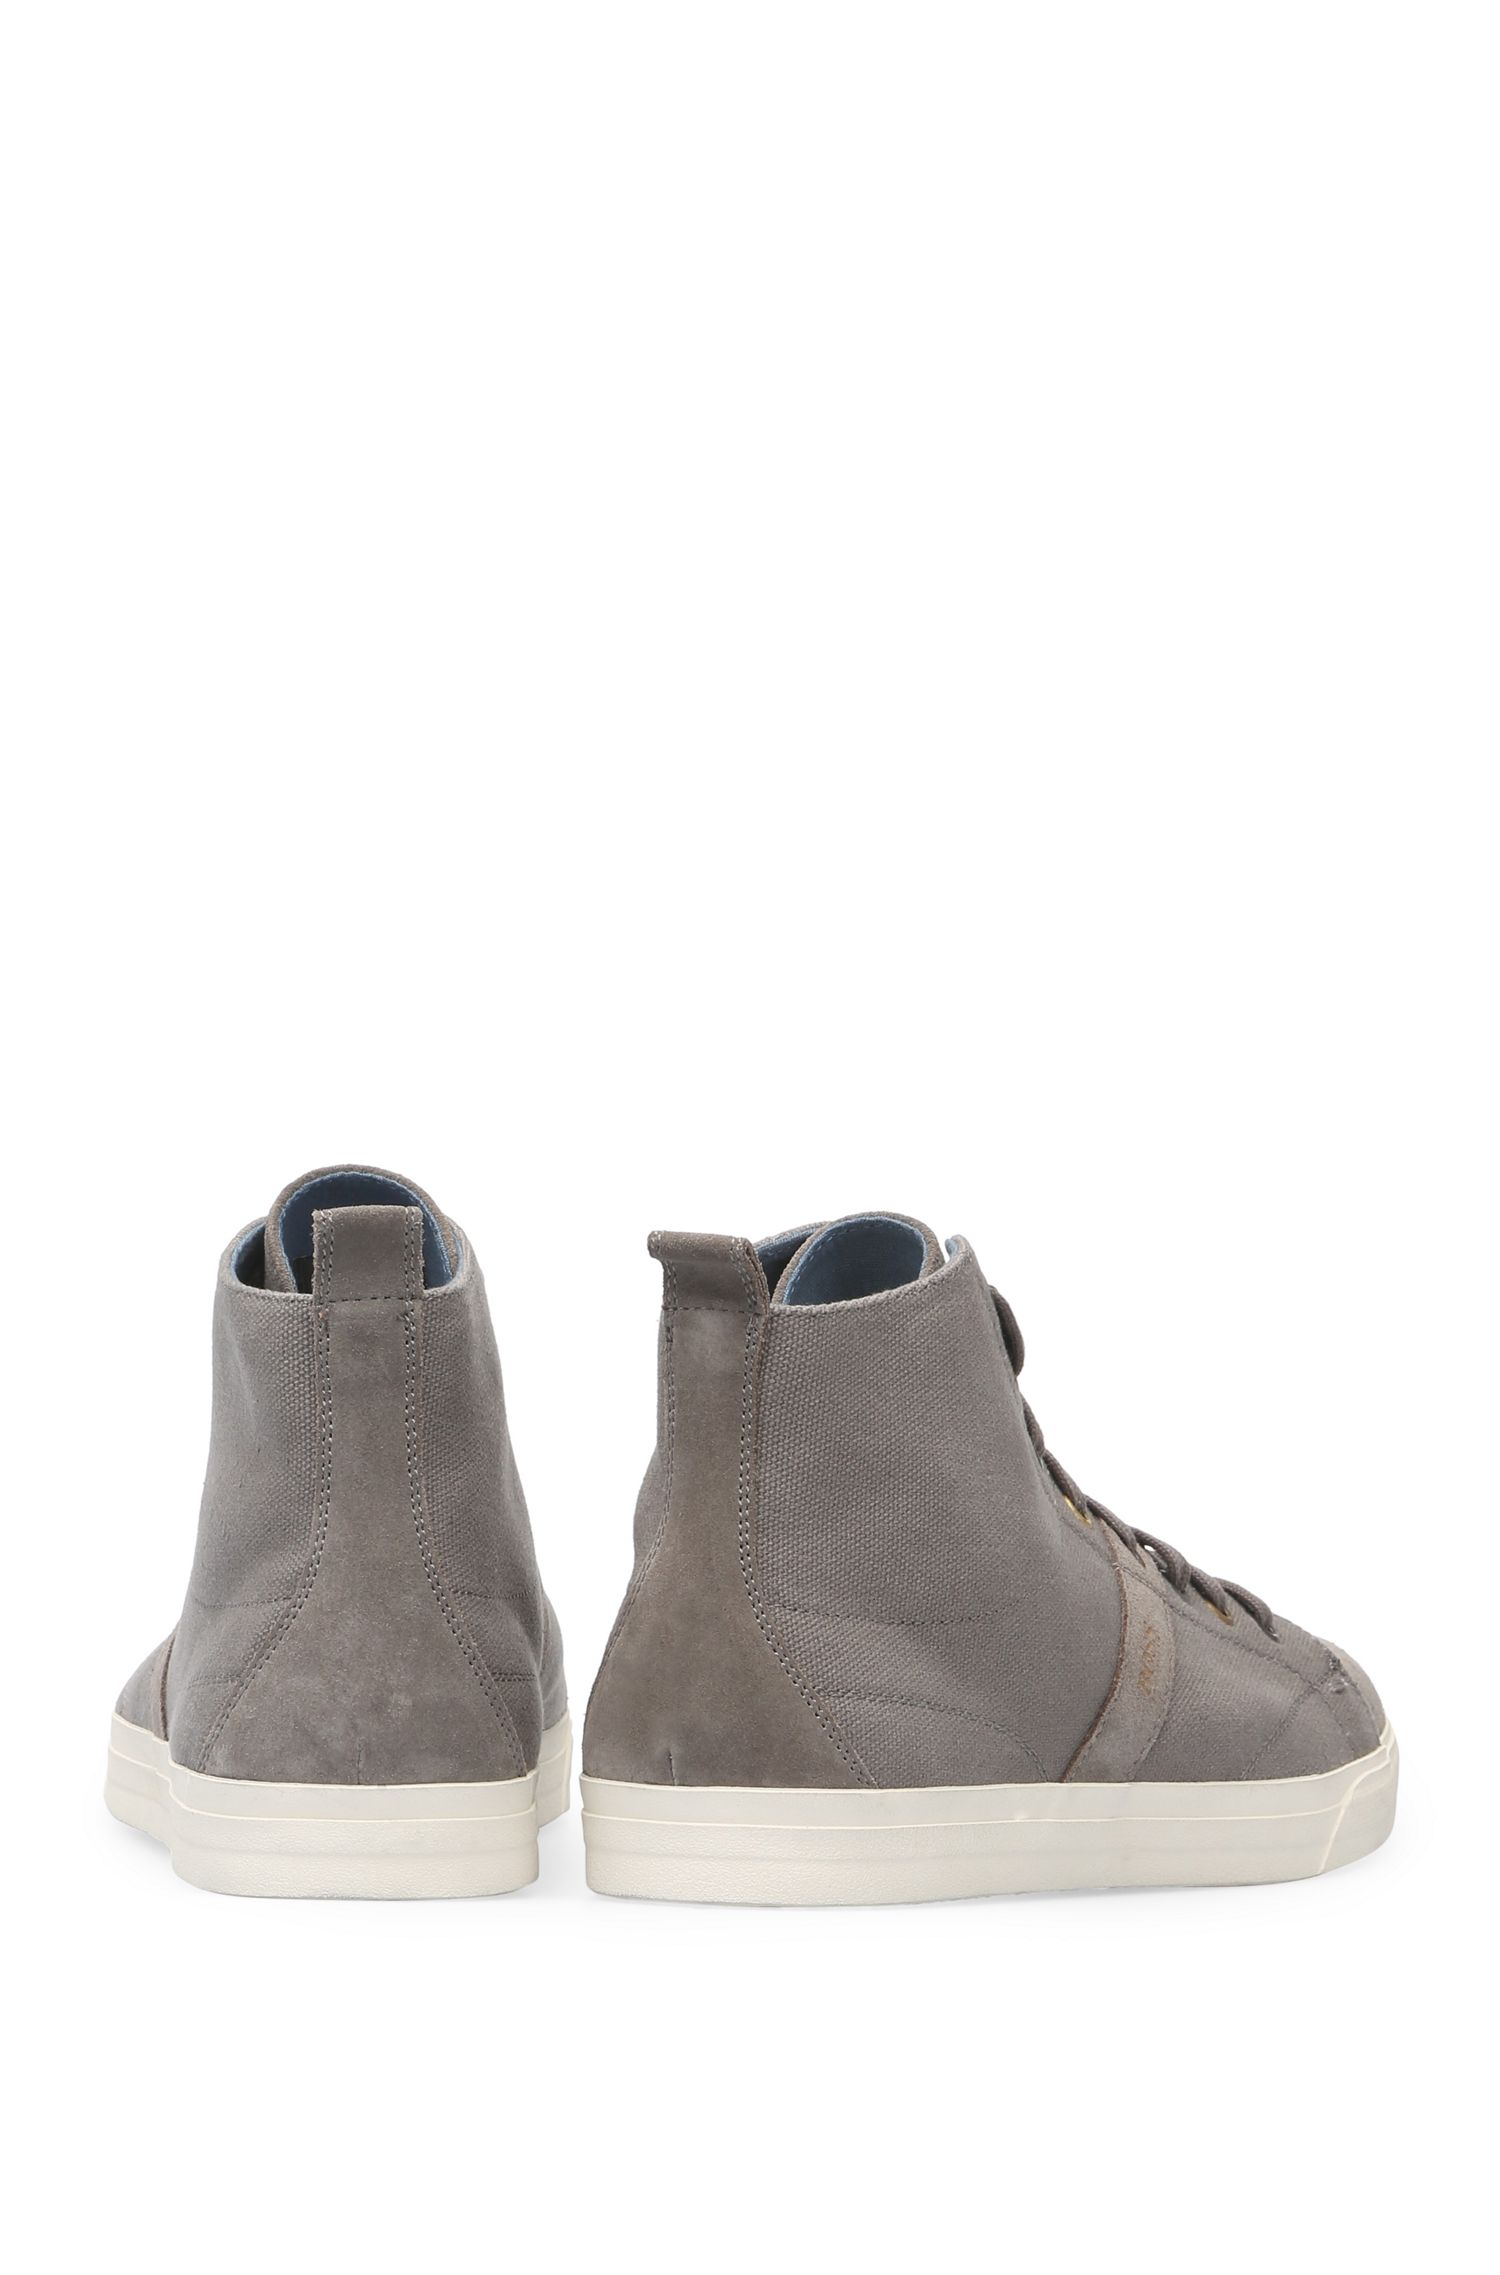 High Top Sneakers aus Baumwoll-Canvas mit Leder: ´Bushwick_Hicu_cv`